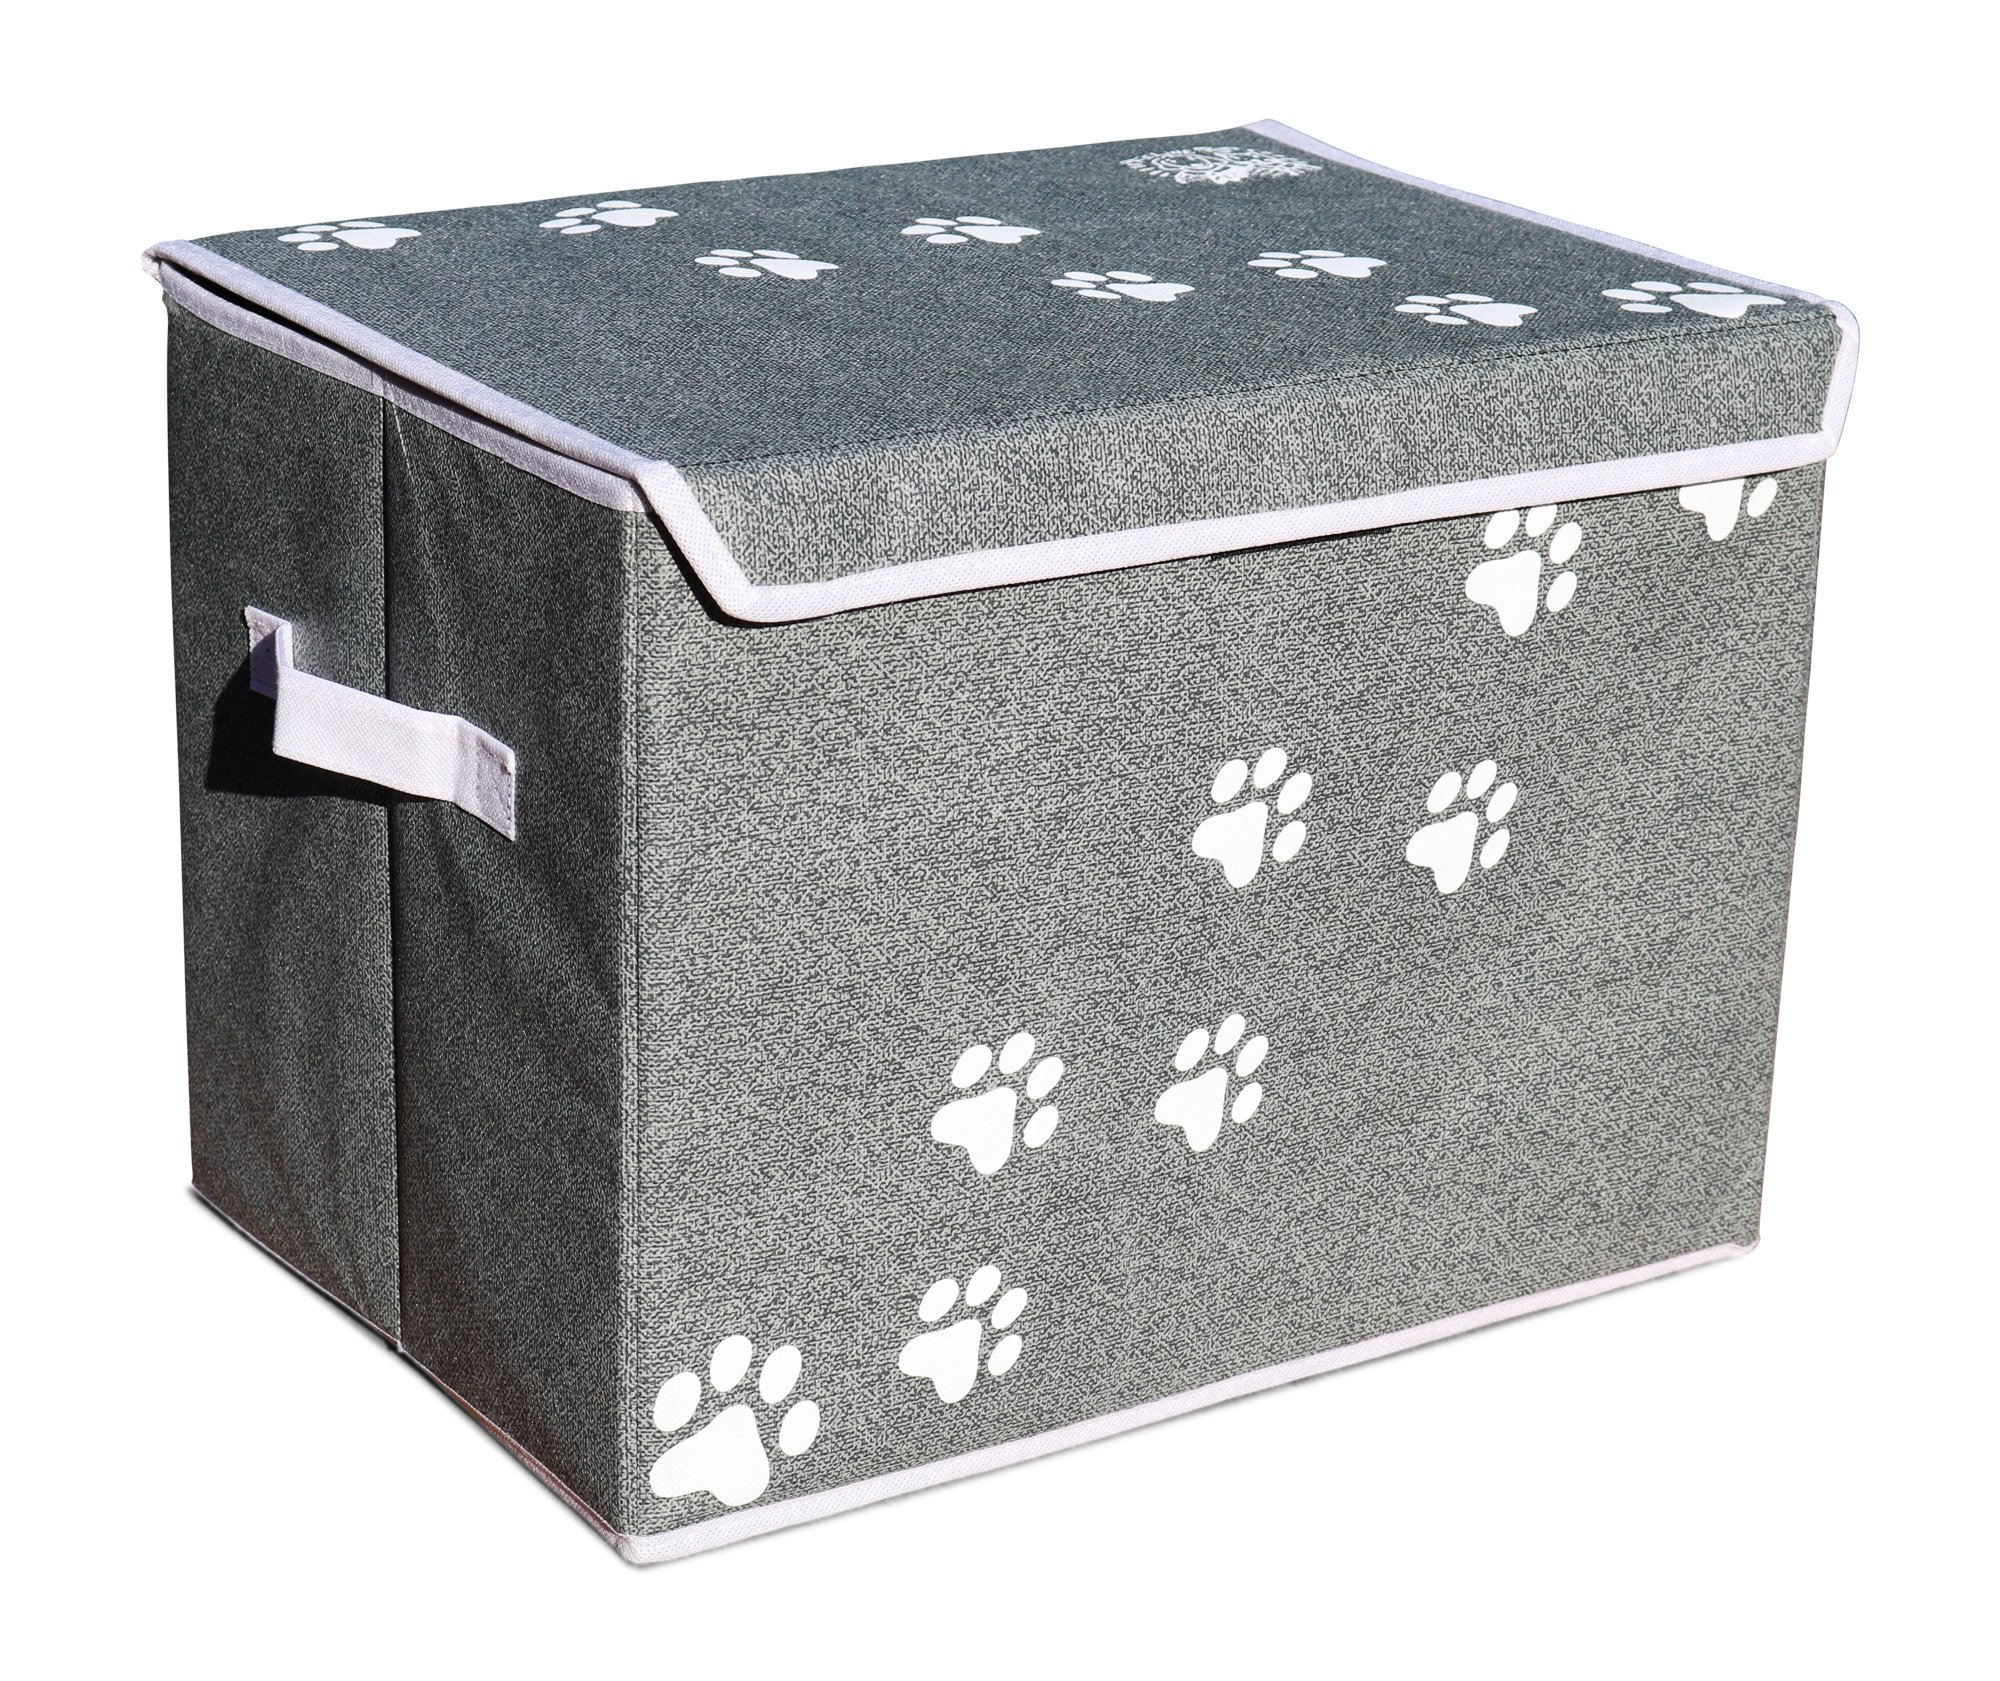 Feline Ruff Large Dog Toys Storage Box 16'' x 12'' Pet Toy Storage Basket with Lid. Perfect Collapsible Canvas Bin for Cat Toys and Accessories Too! (Gray) by Feline Ruff